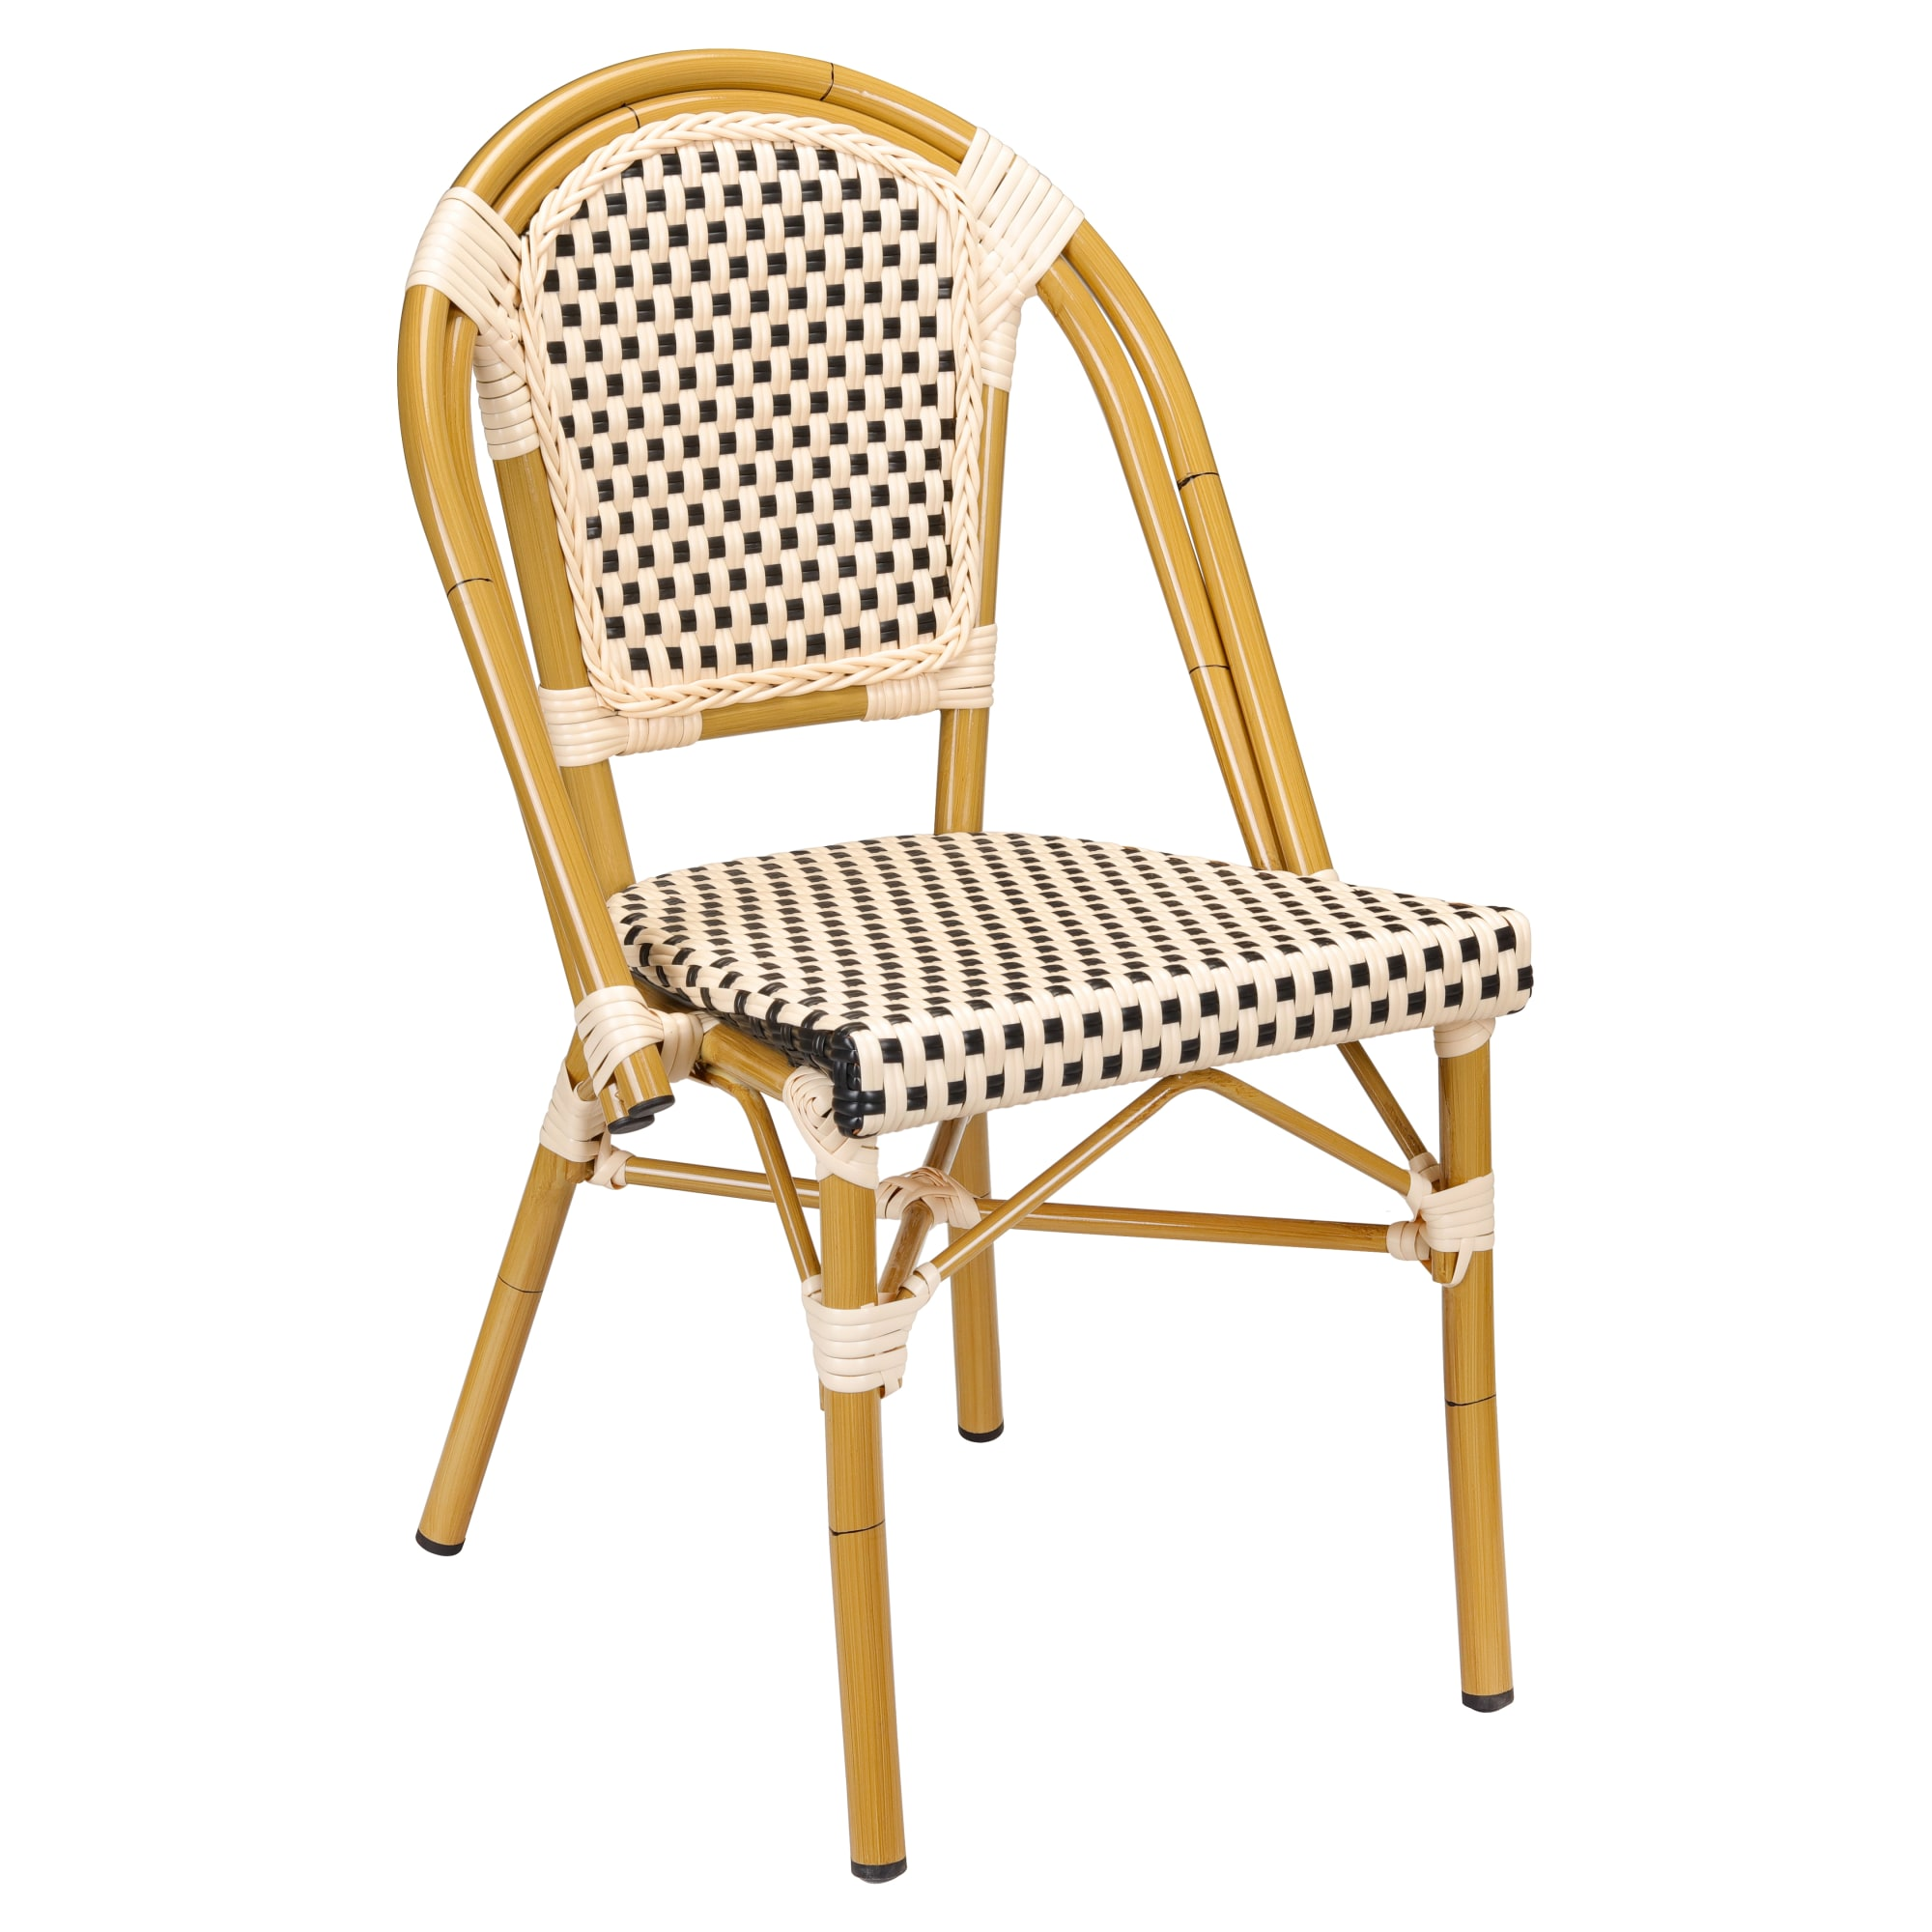 Aluminum Bamboo Patio Chair With Black & Cream Rattan